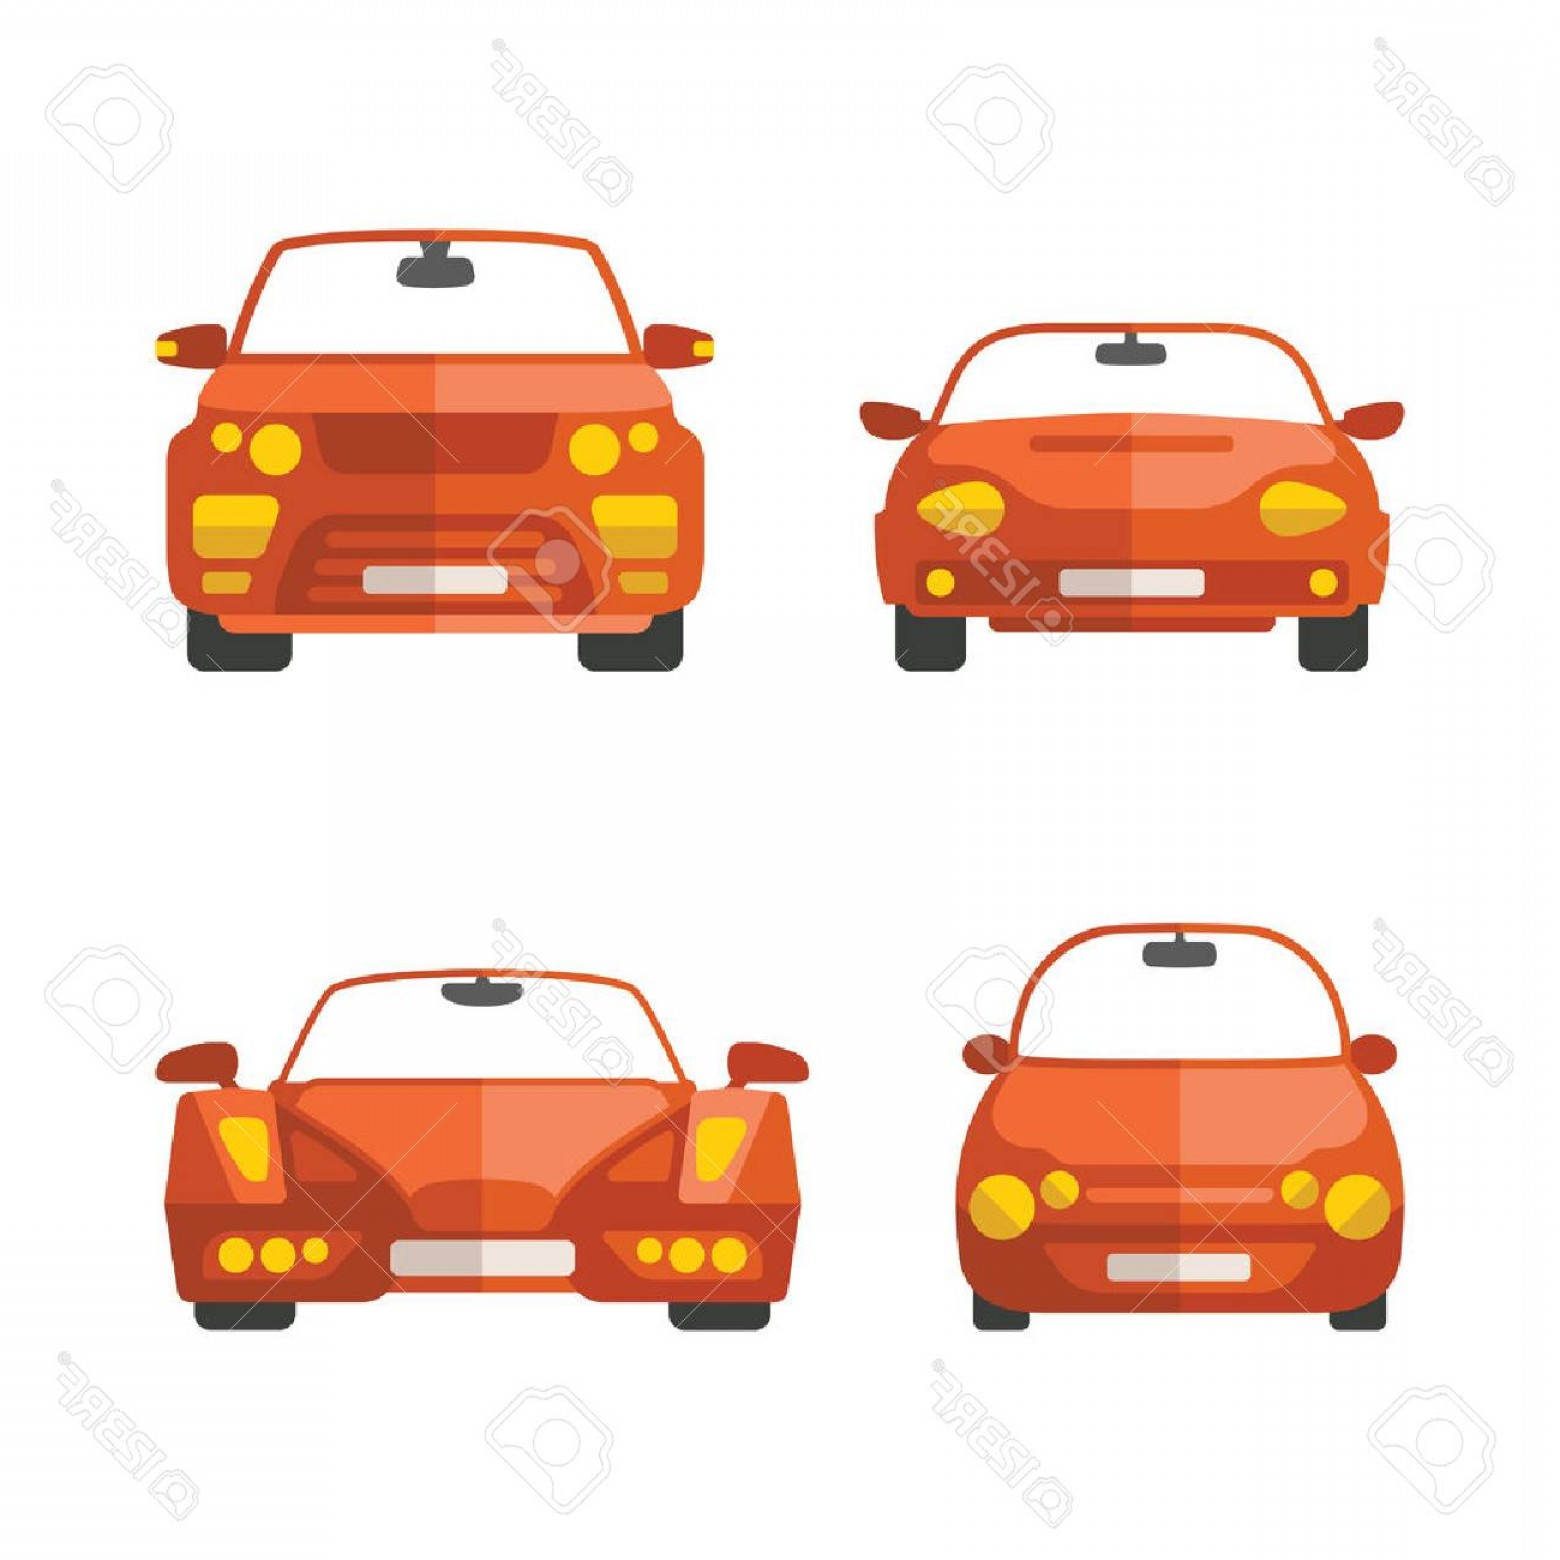 SUV Car Elevation Vector: Photostock Vector Set Of Different Vector Passenger Cars In Flat Style